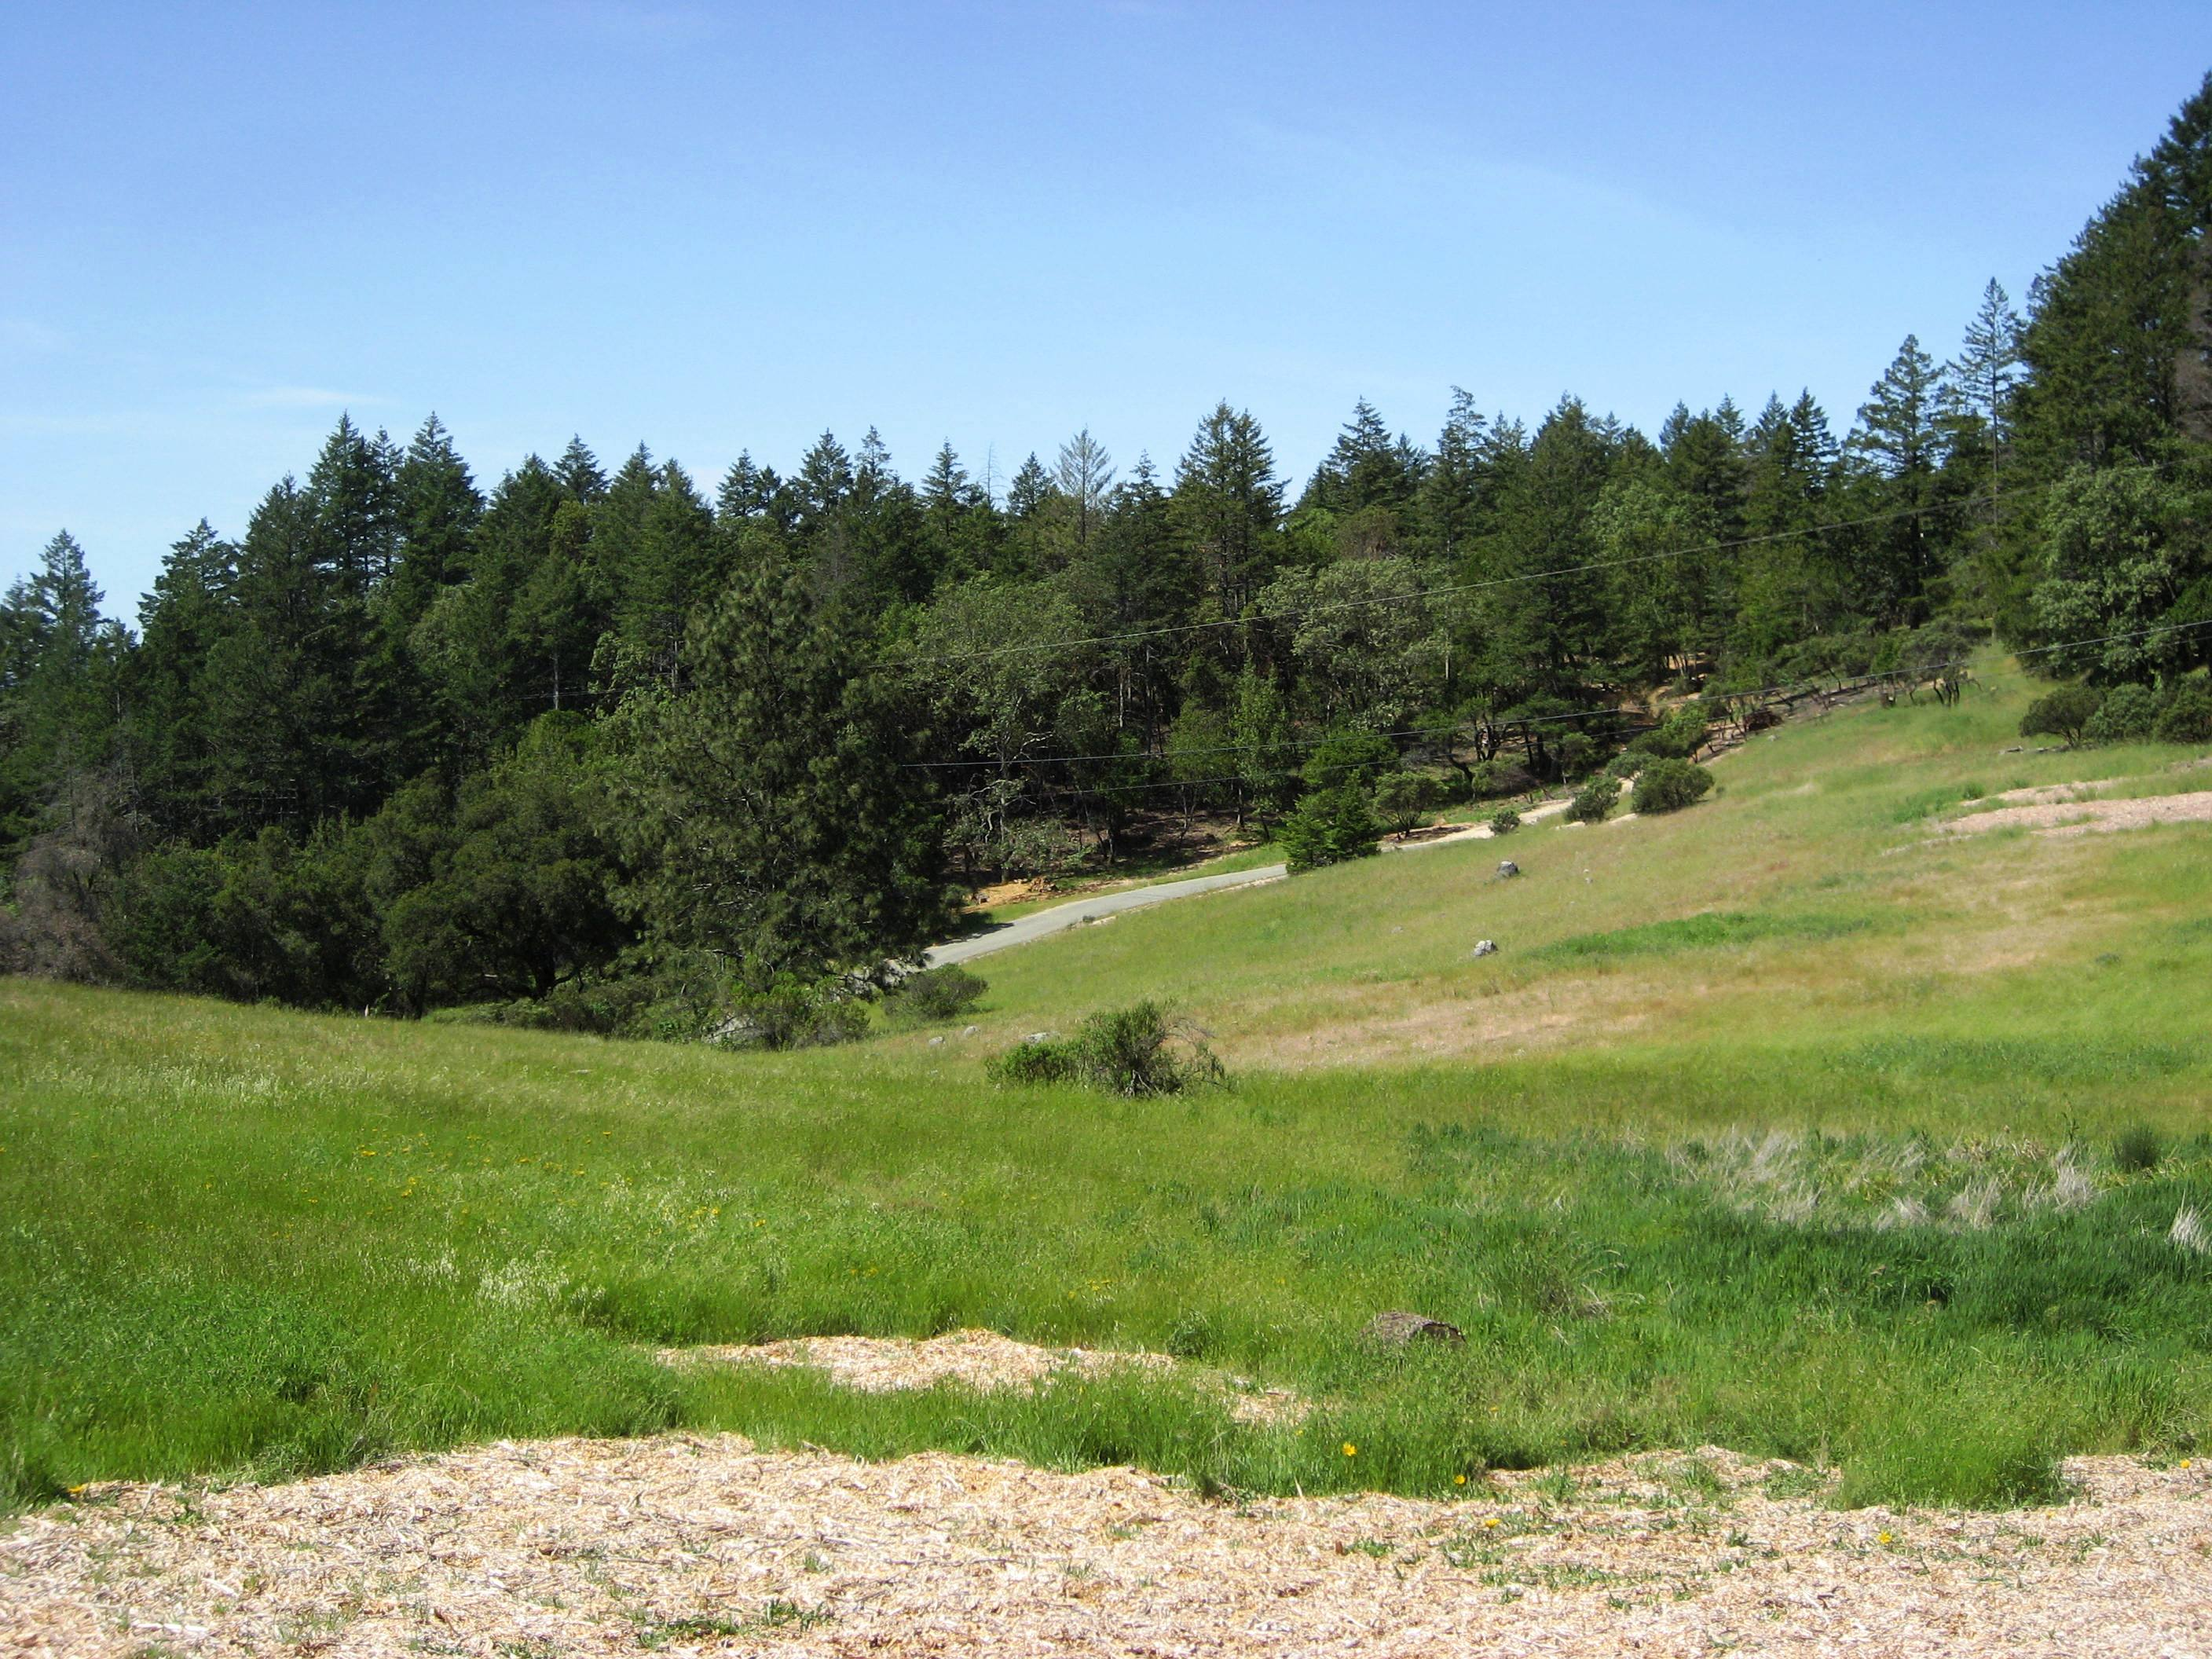 Land for Sale at 0 Cavedale Rd, Oakville, CA 94562 0 Cavedale Rd Oakville, California 94562 United States